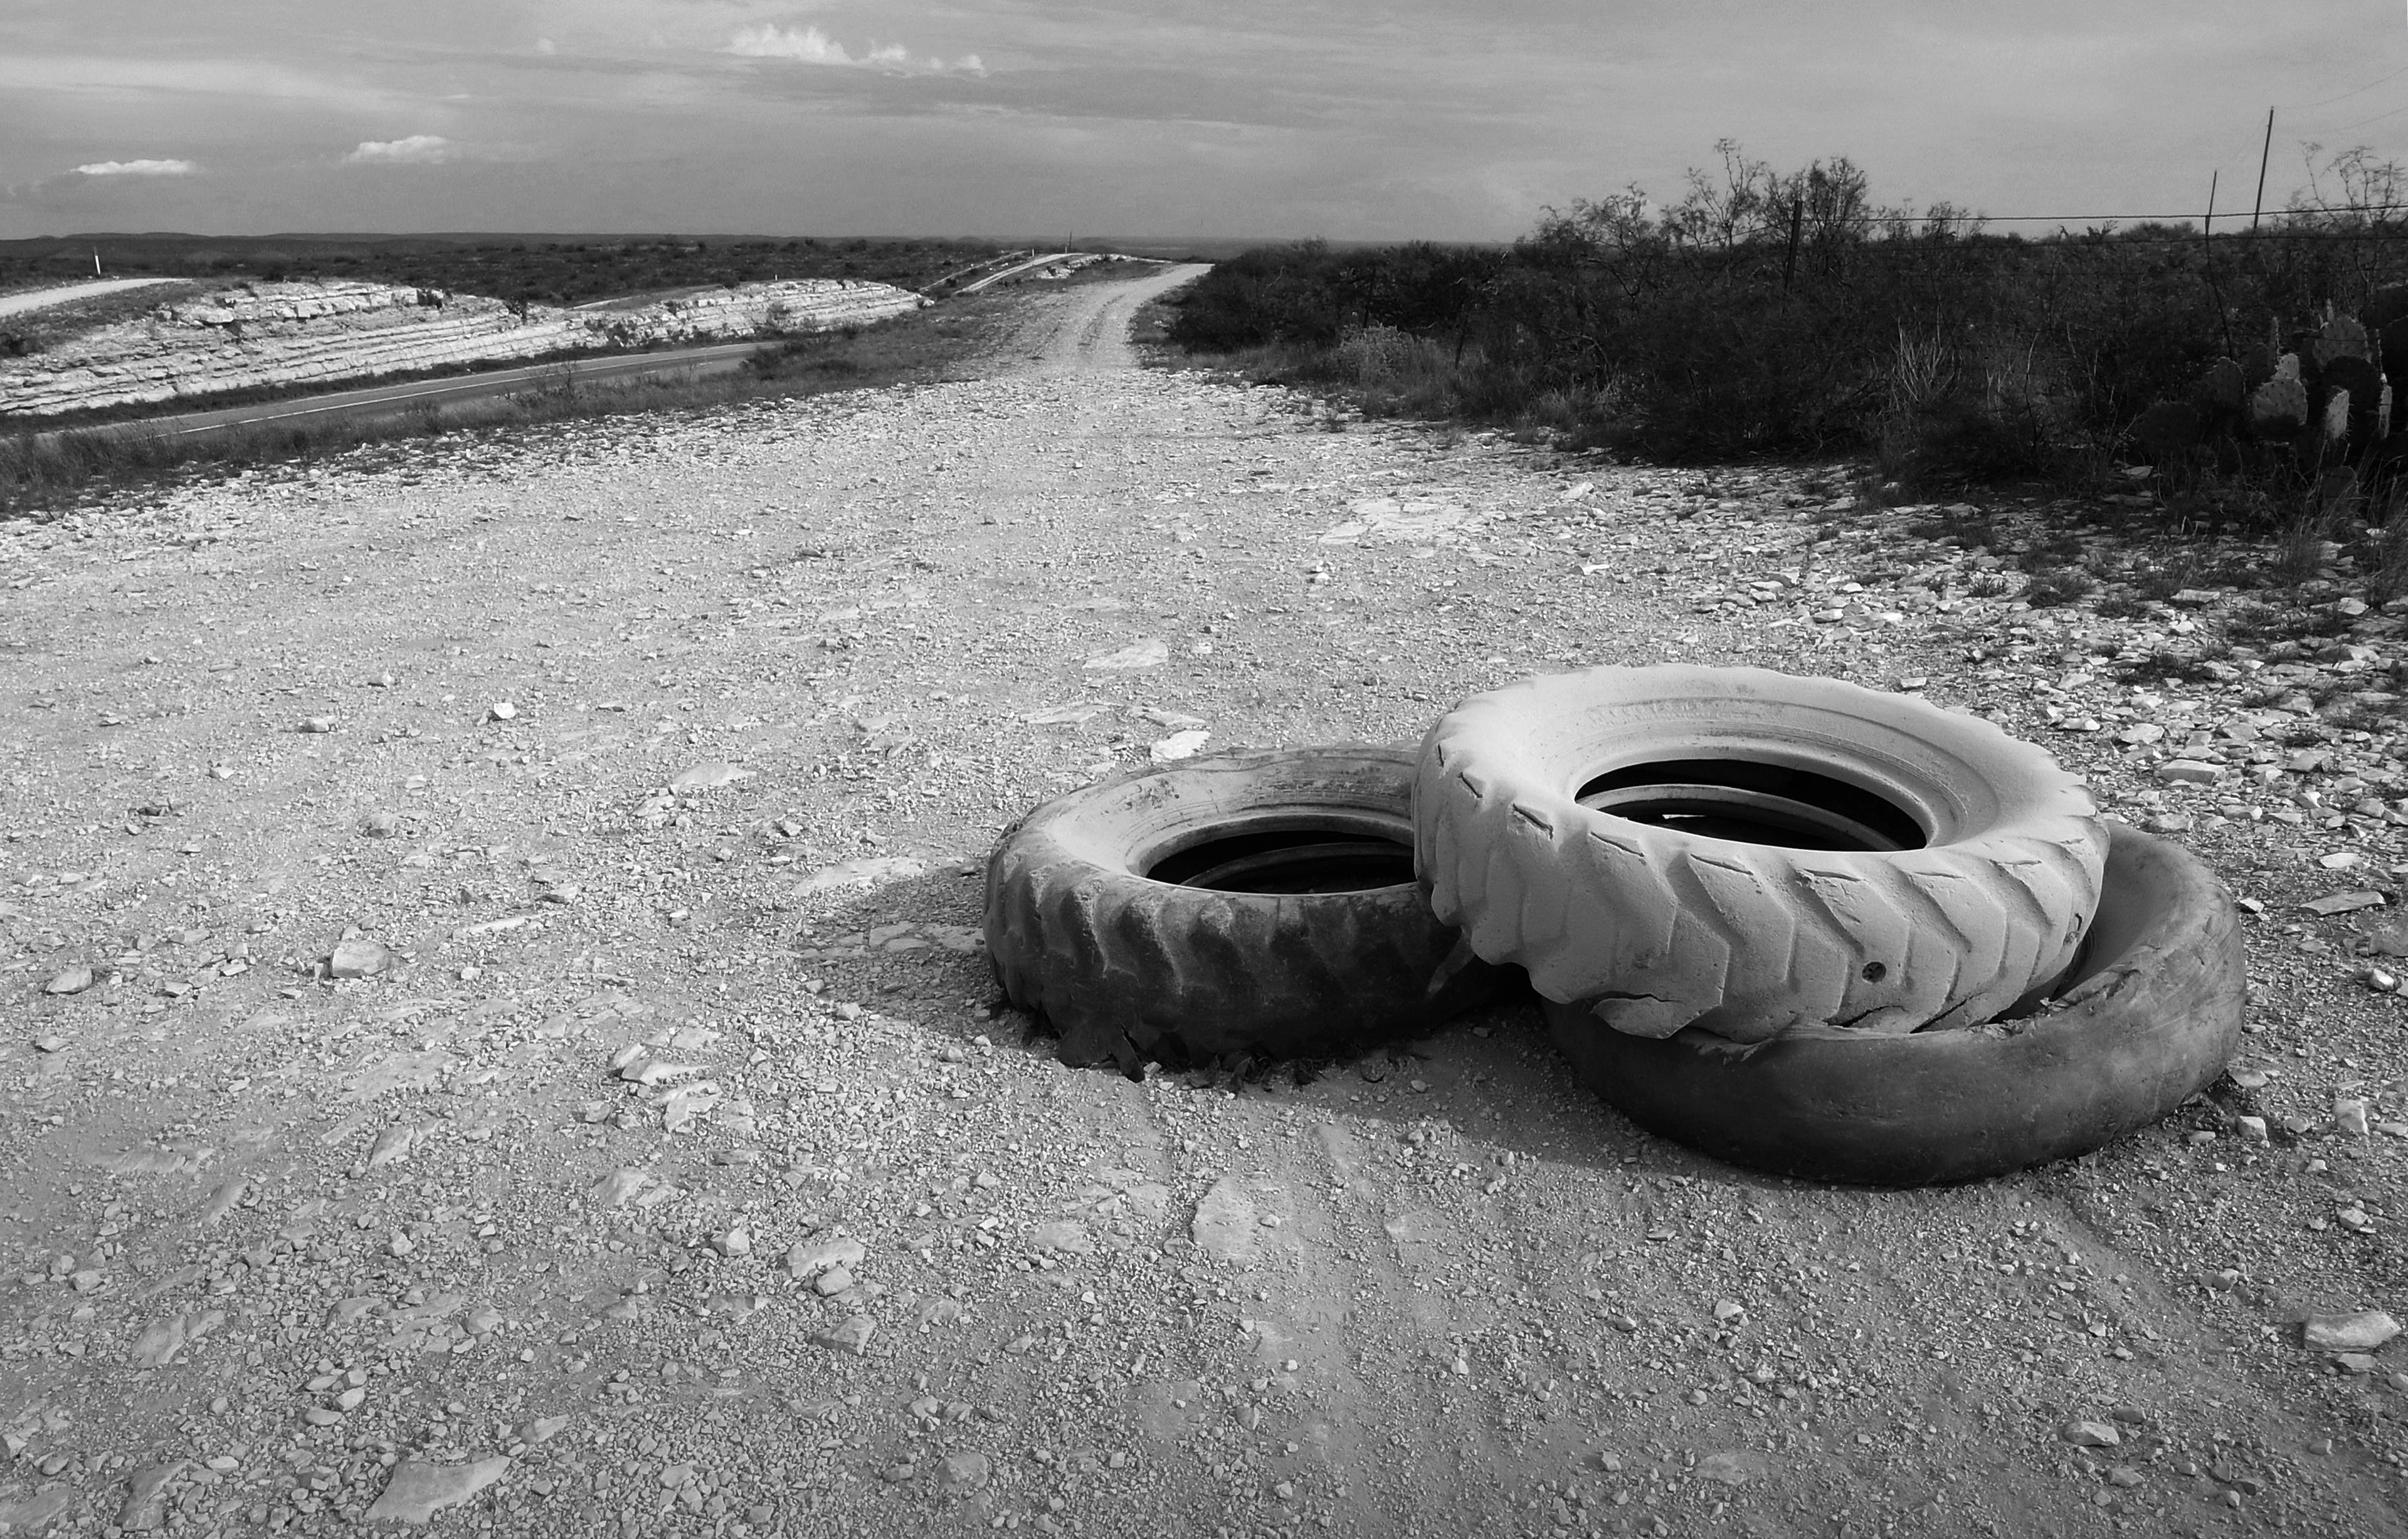 Three old truck tires that have been dragged across the dirt near a desert road